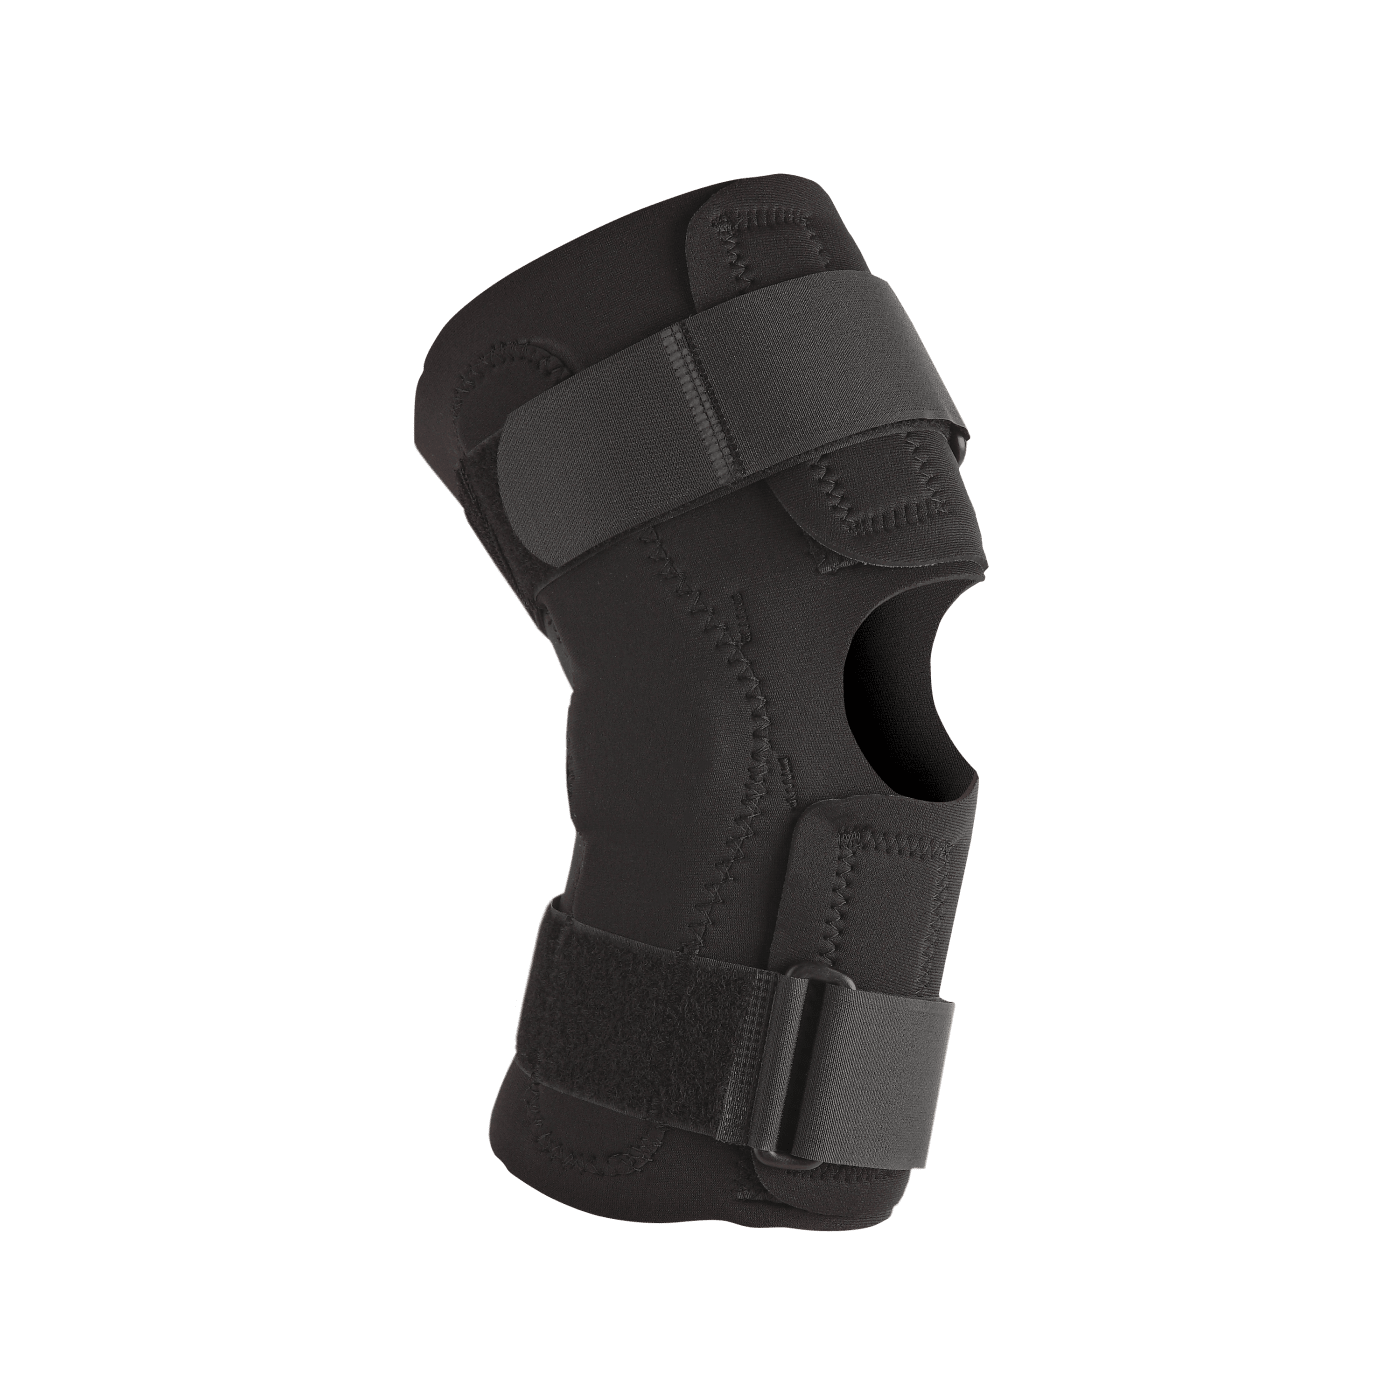 Neoprene wraparound hinged knee supports with removable hinges 3XLRG